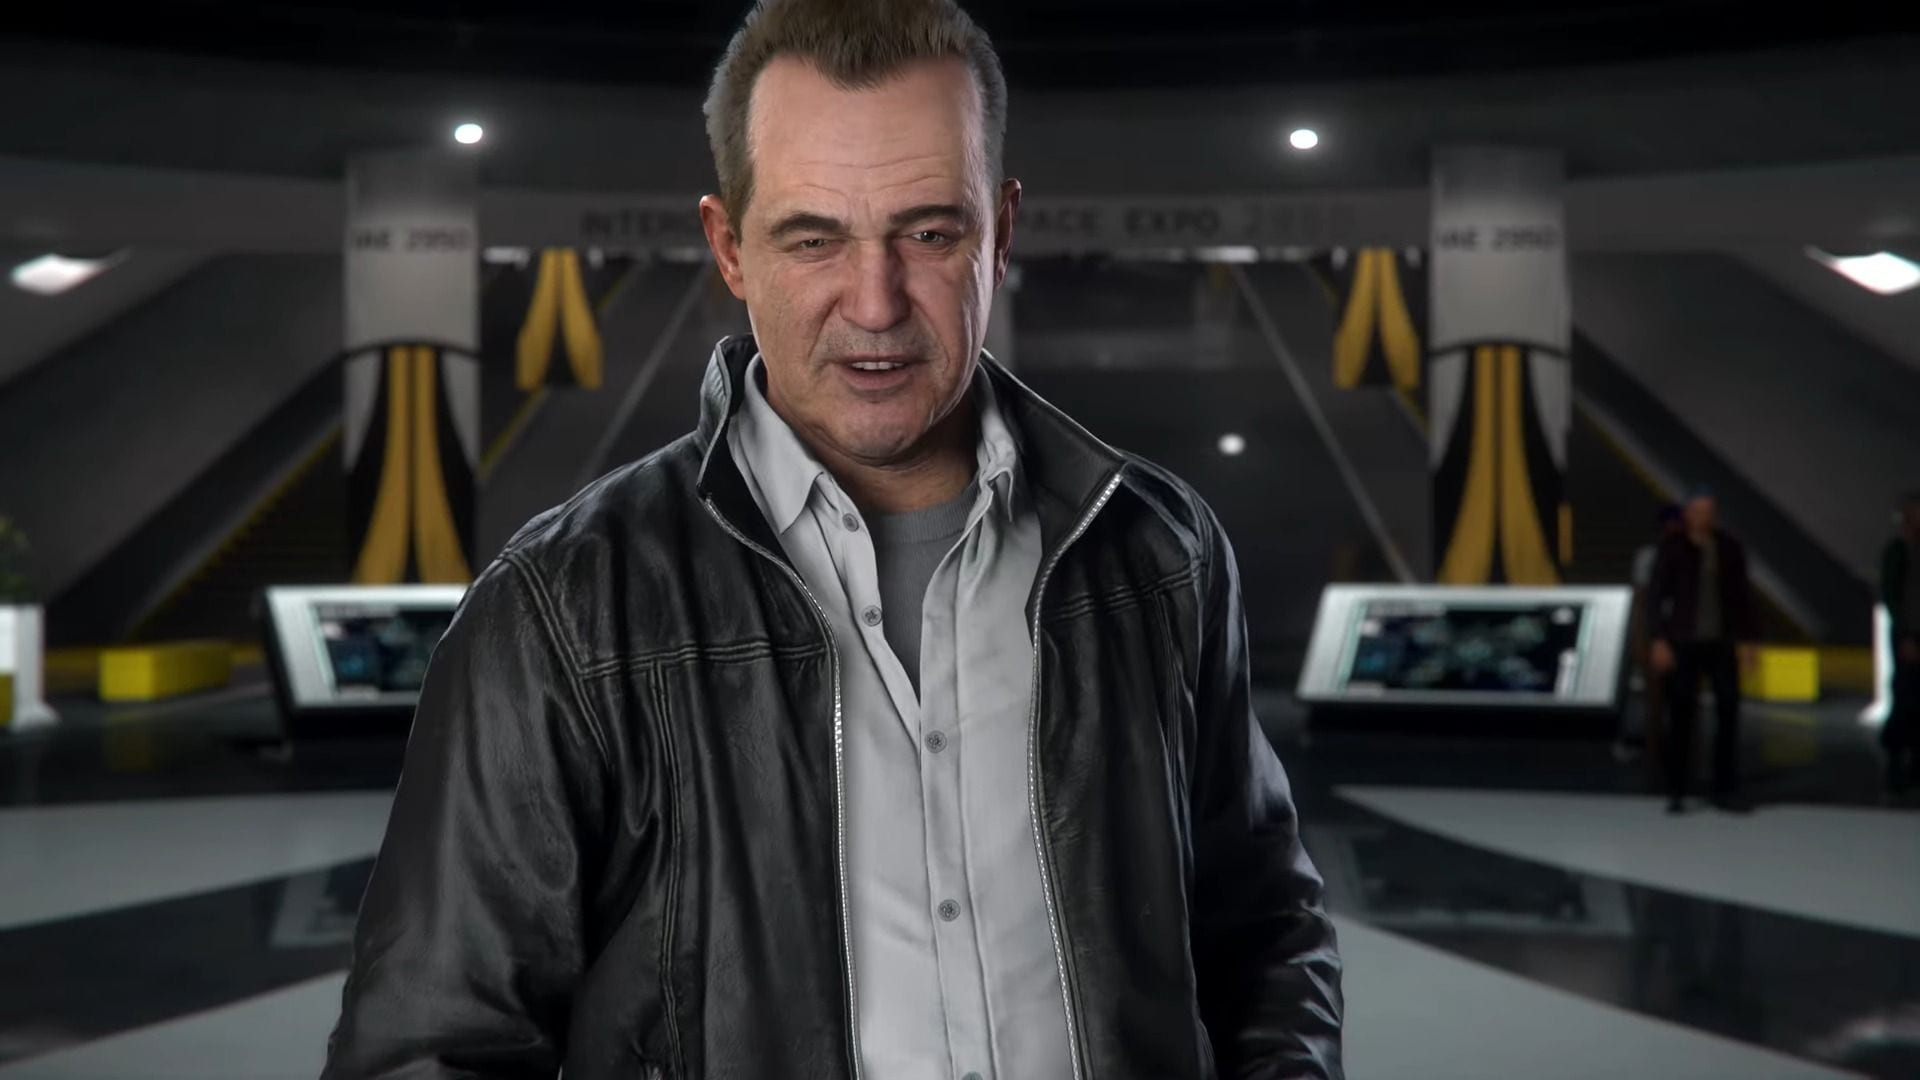 Star Citizen Trailer & Movies Deal with IAE 2050 & Upcoming Content material as Crowdfunding Passes $317 Million 1